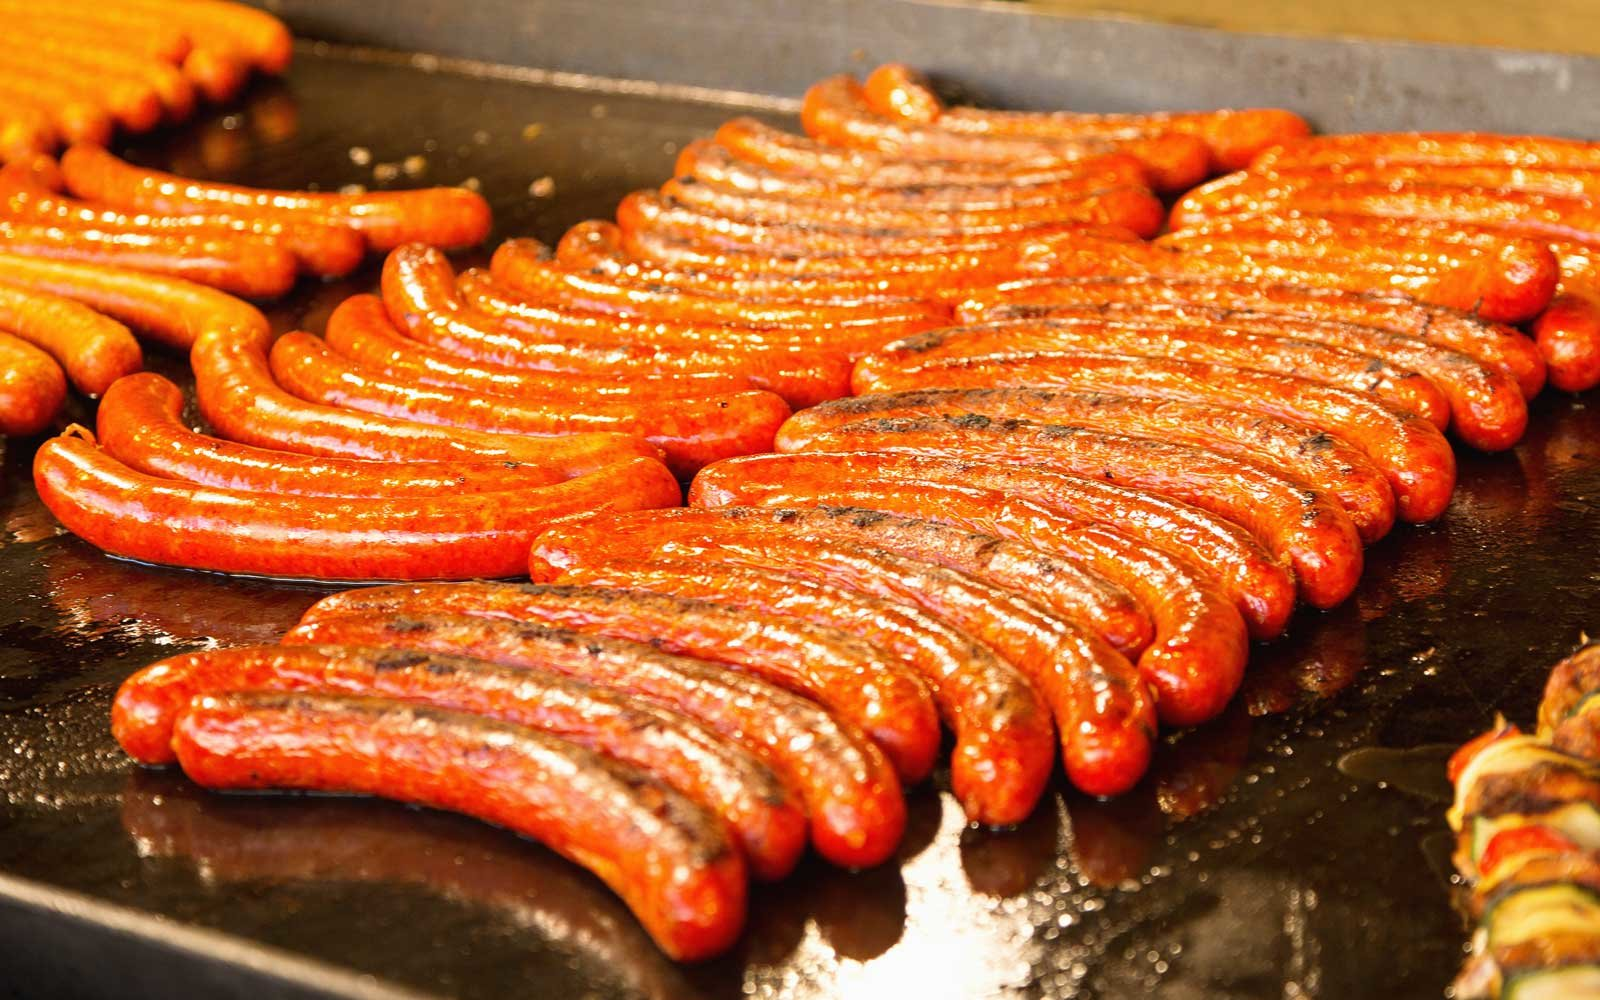 Christmas markets in locations like Budapest are filled with a variety of Hungarian sausages to taste.